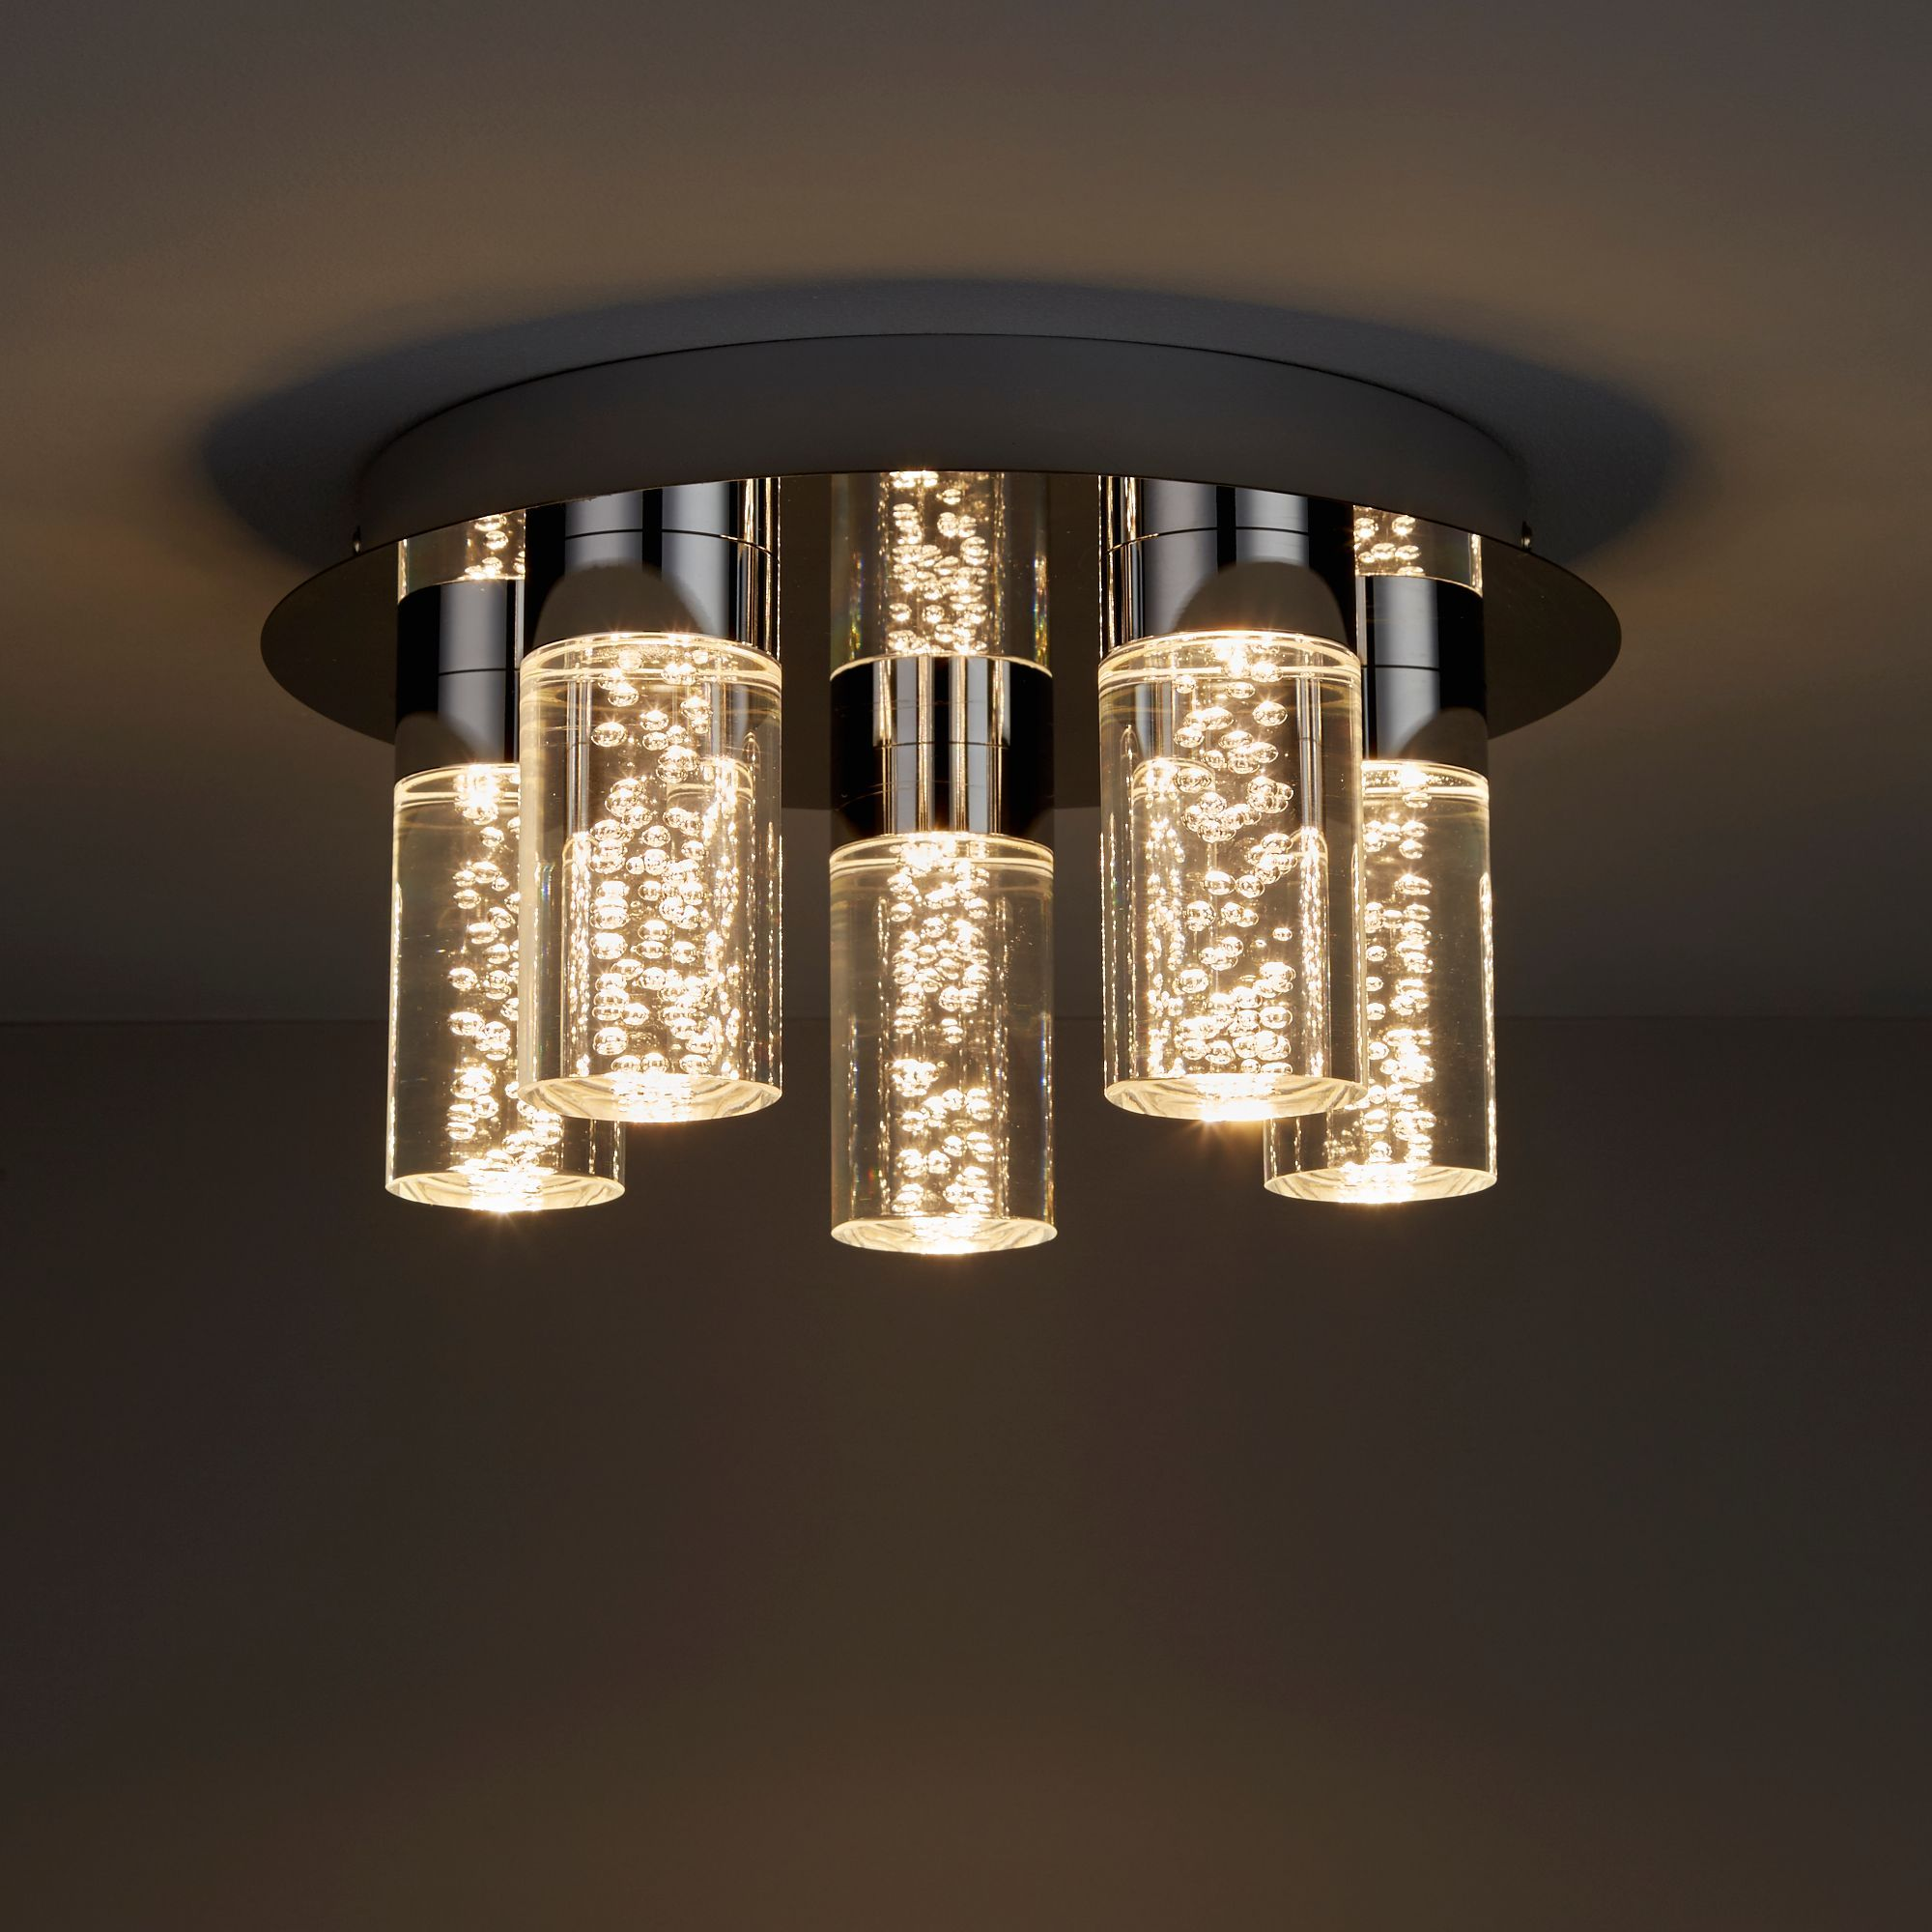 Hubble chrome effect 5 lamp bathroom ceiling light bq for all your home and garden supplies and advice on all the latest diy trends